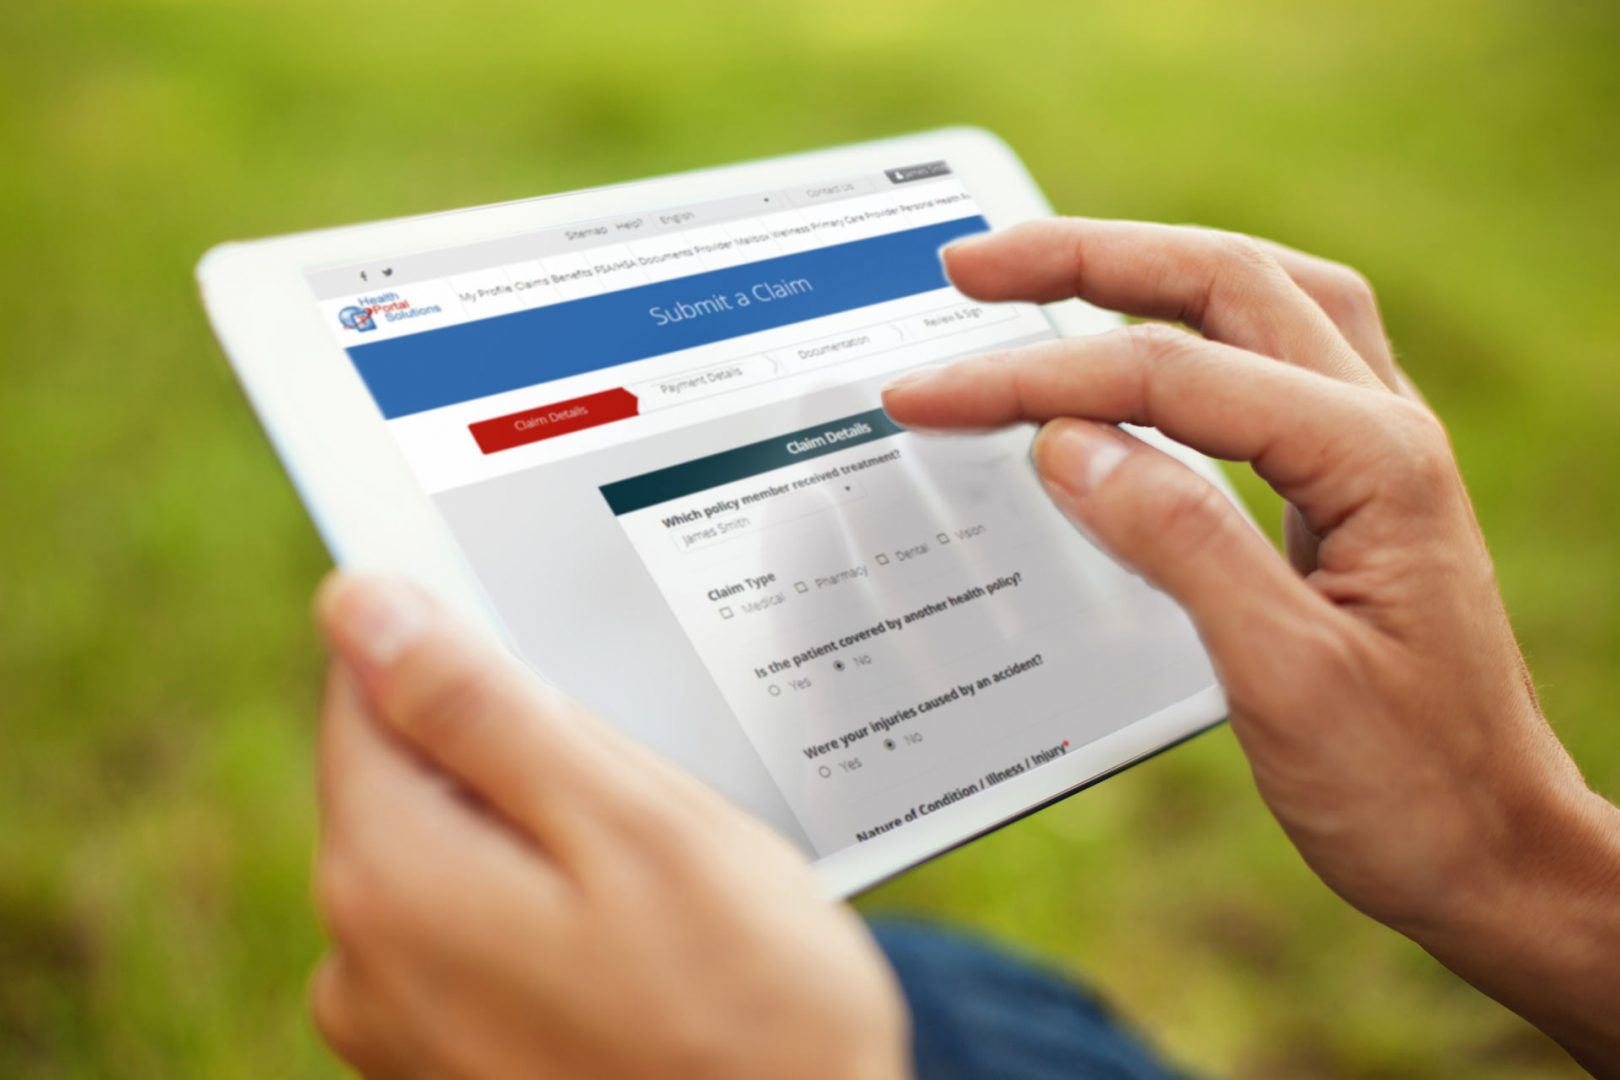 close up on hands touching an iPad to submit a claim while person is on the grass